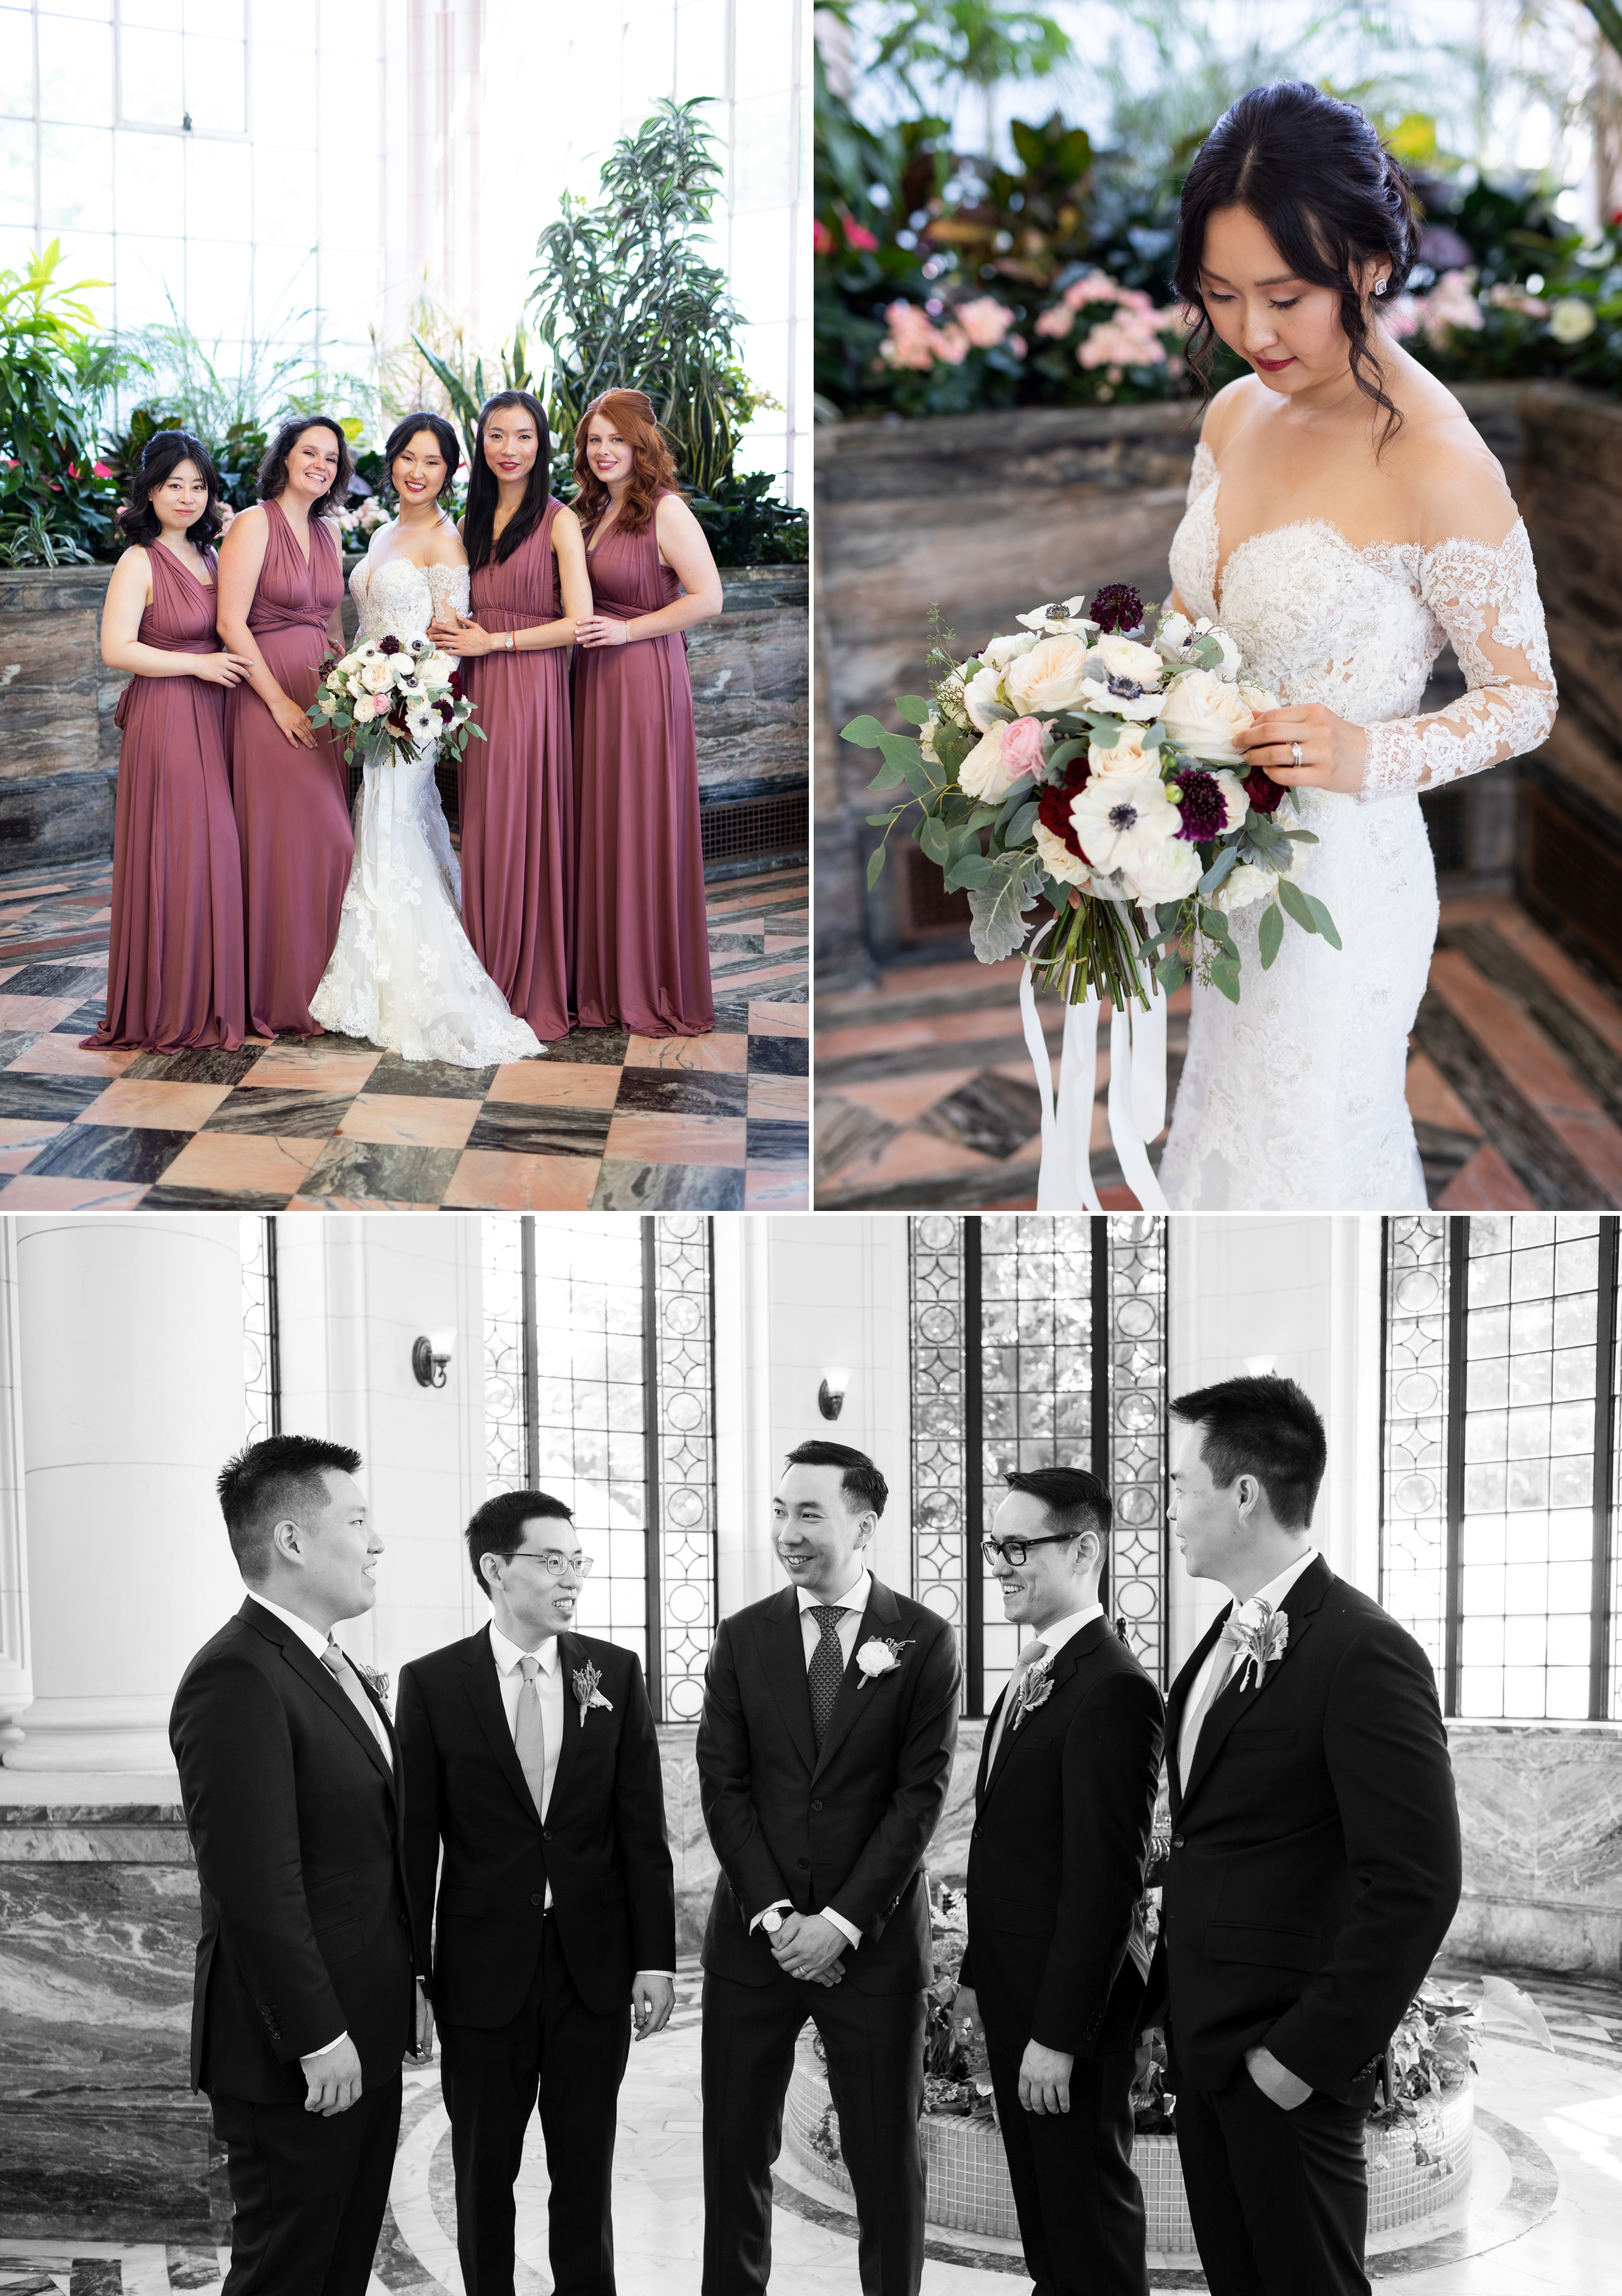 Bridesmaids Groomsmen Toronto Casa Loma Four Seasons Chinese Wedding Zsuzsi Pal Photography Cindy Brian